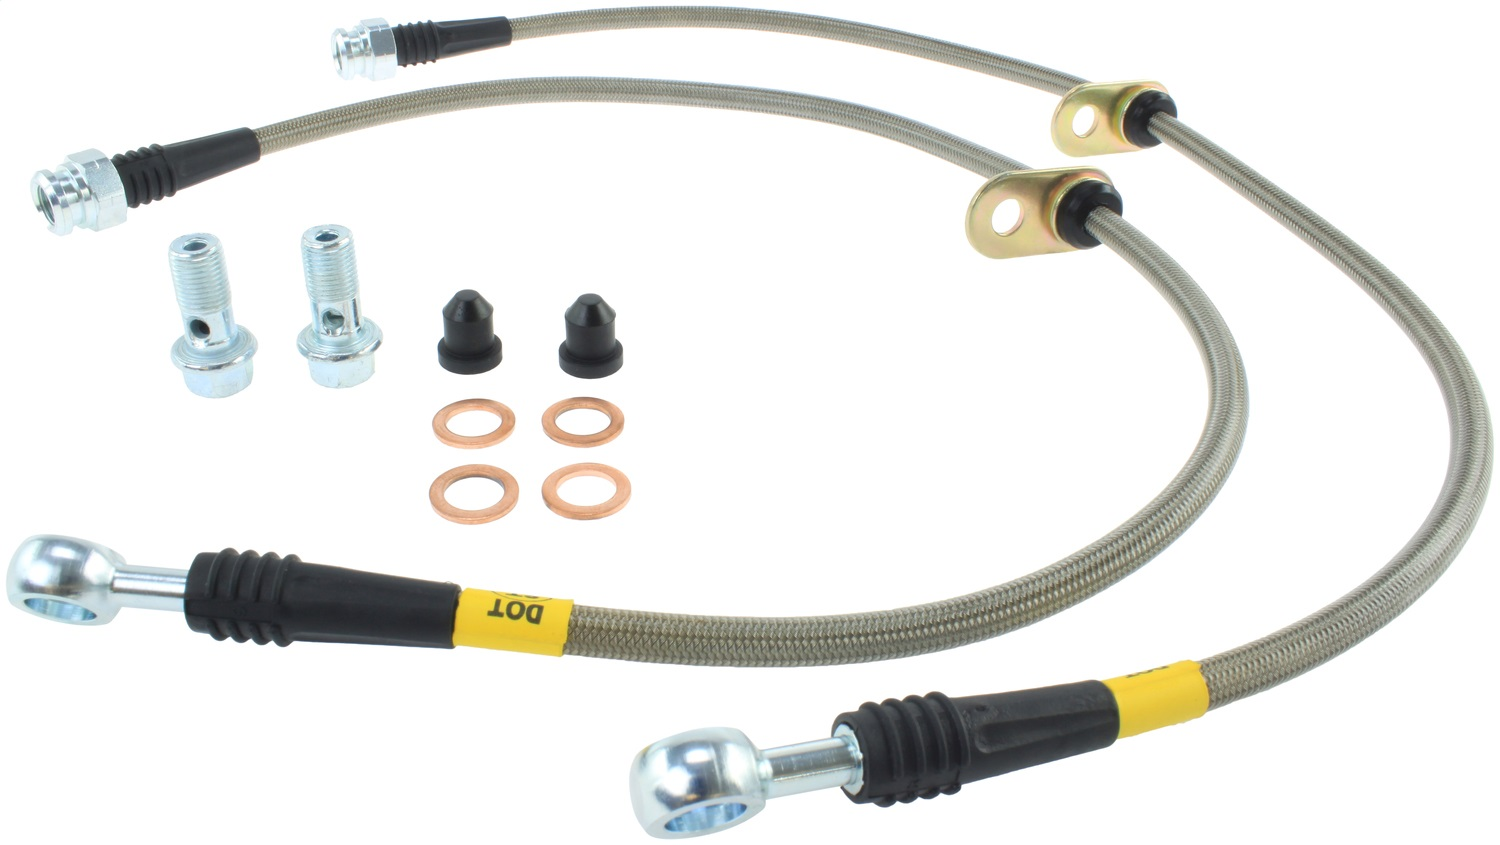 StopTech 950.40011 Stainless Steel Braided Brake Hose Kit Fits Civic CSX ILX